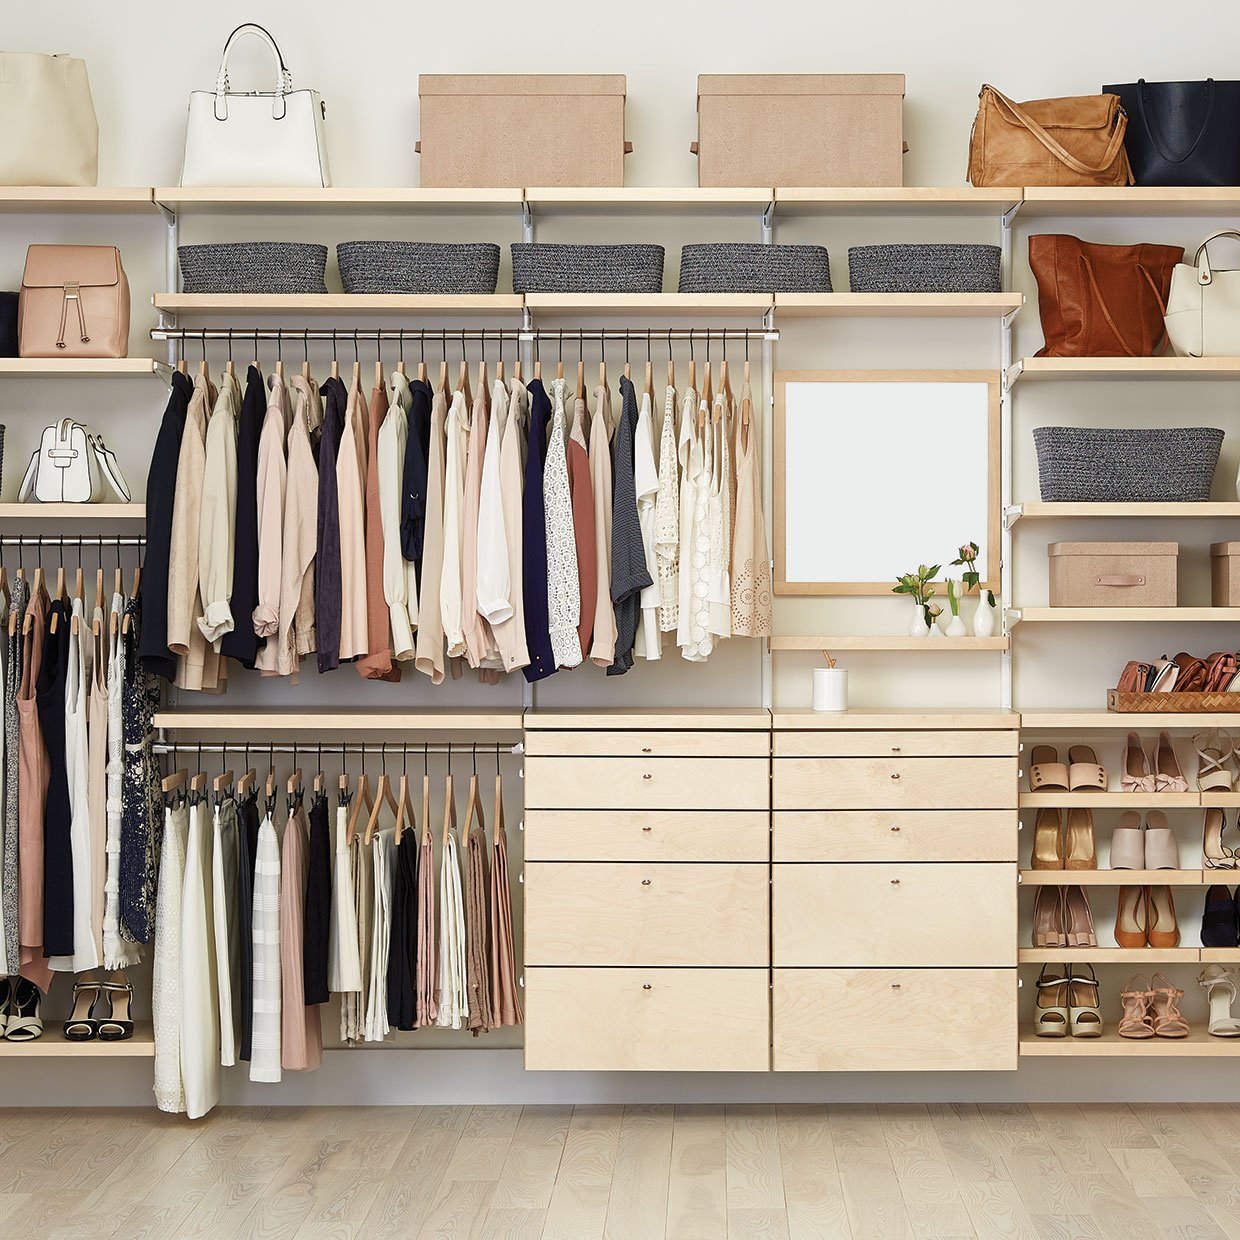 Organized Clothes and Shoes